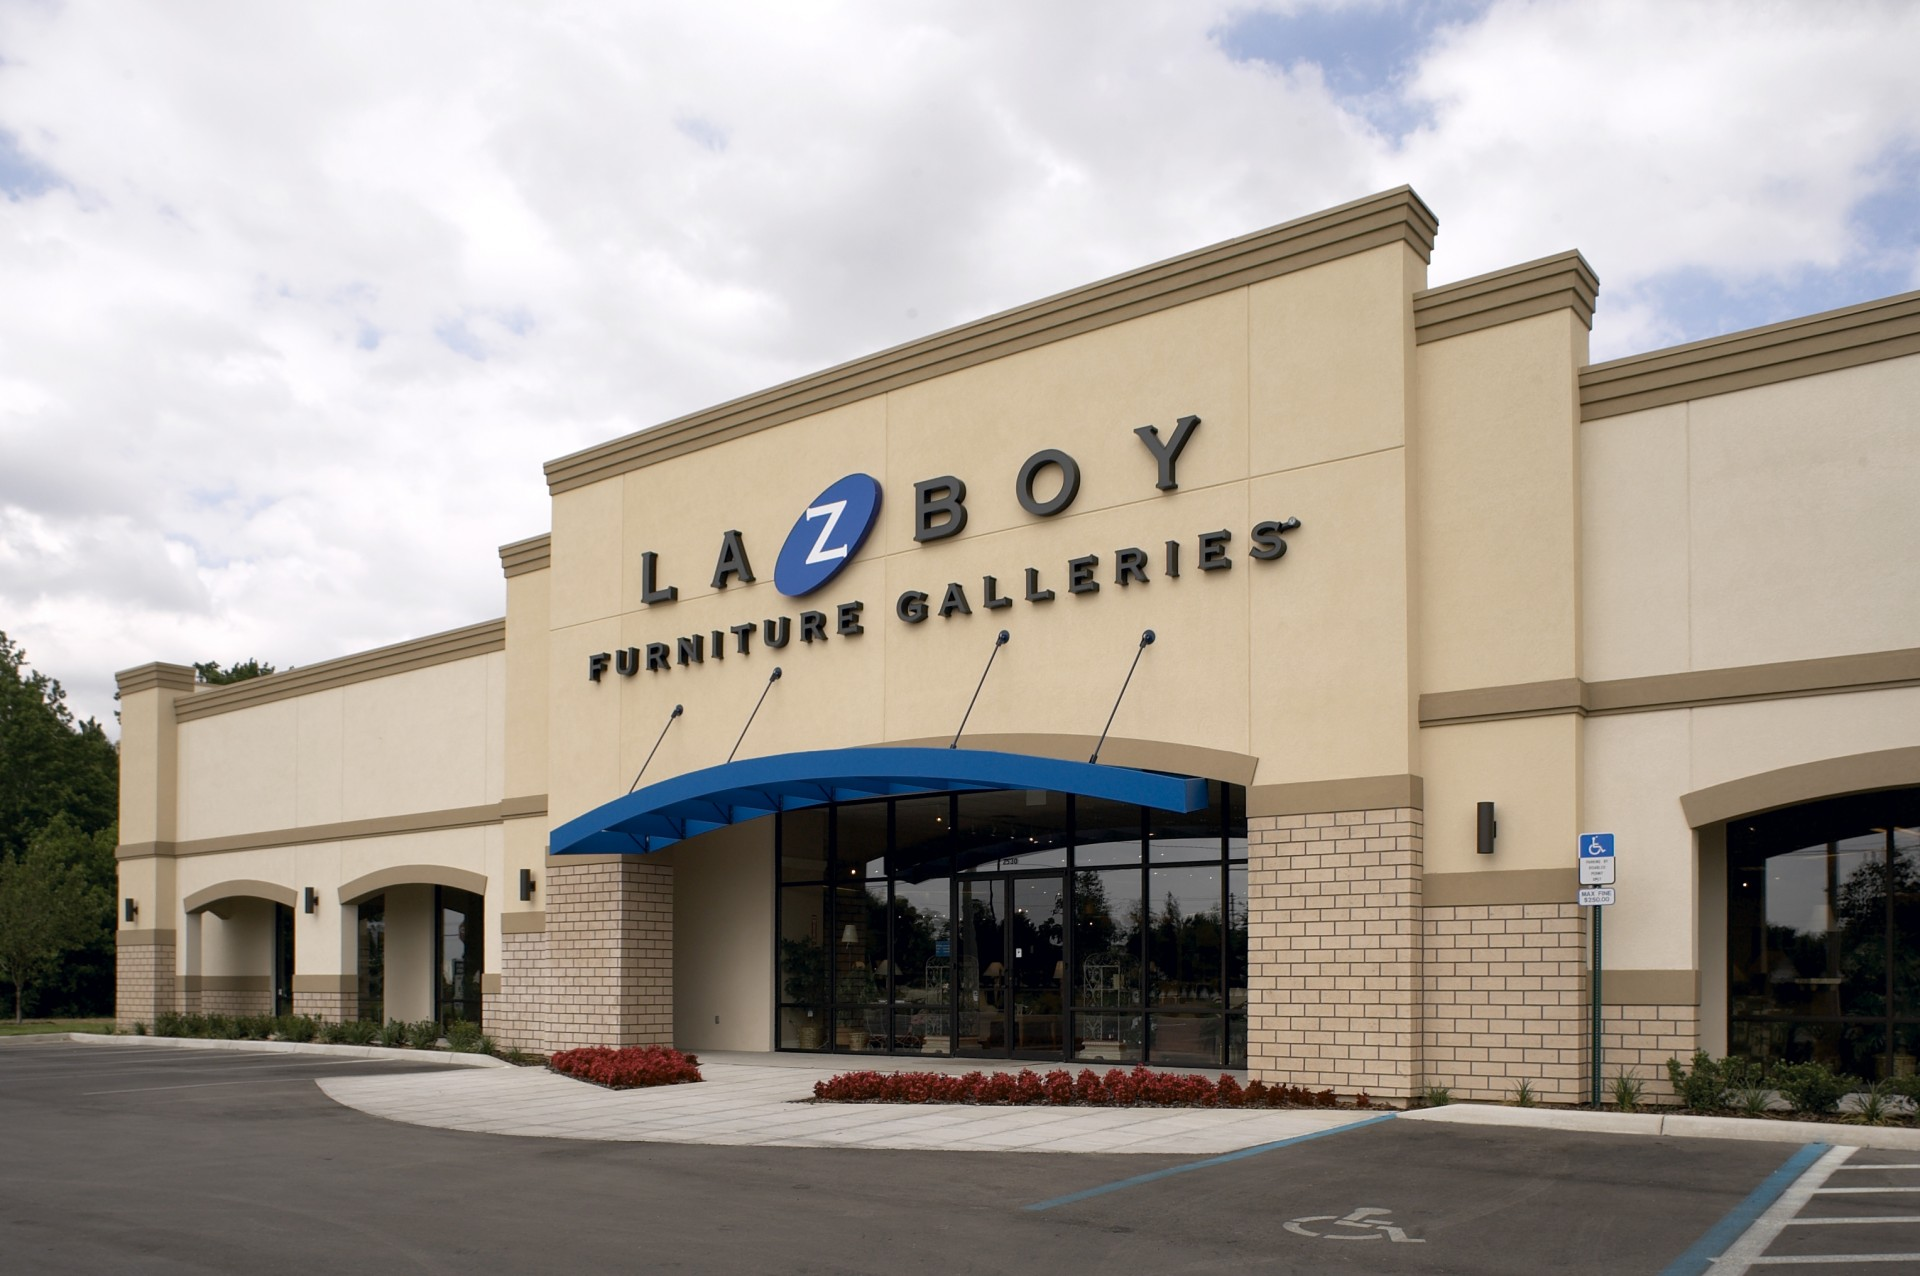 La-Z-Boy Furniture Galleries Location Finder. La-Z-Boy Furniture Galleries feature upholstered recliners, sofas, loveseats and sleeper sofas at over stores nationwide. Find La-Z-Boy Furniture Gallery locations near you.